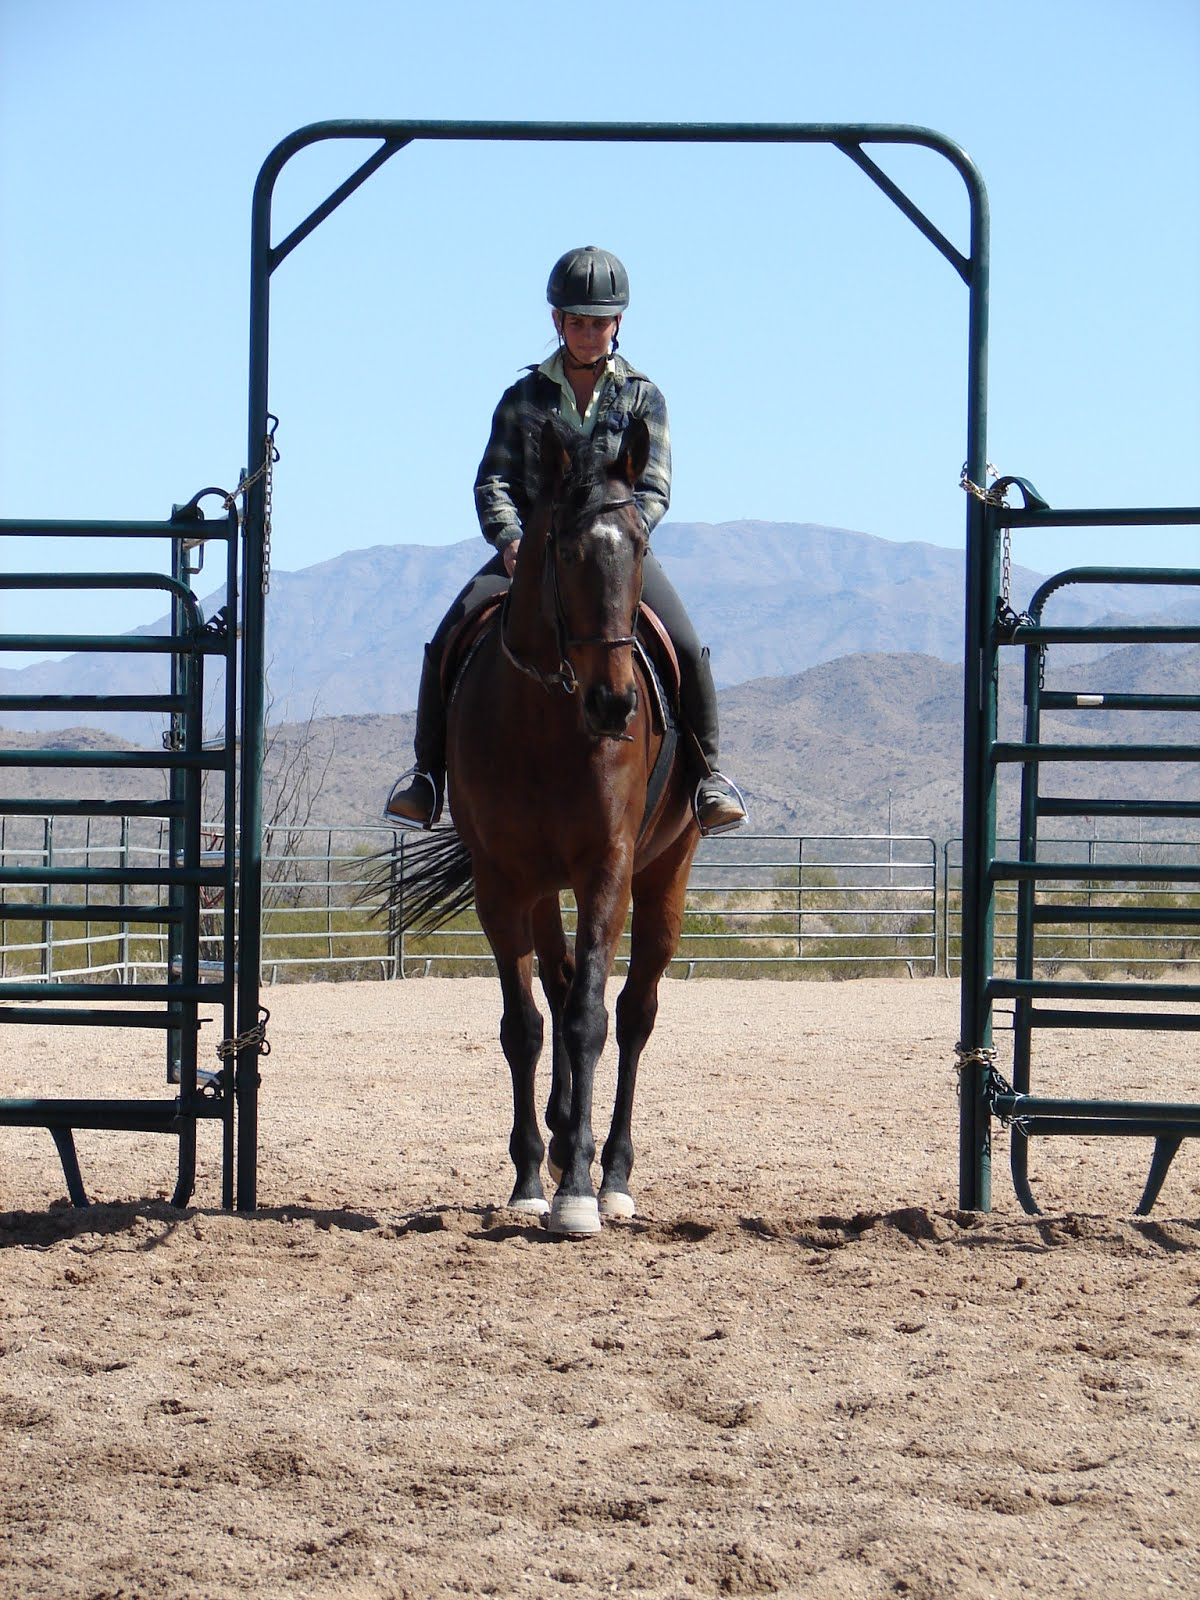 Horsemanship and re-educating a Thoroughbred